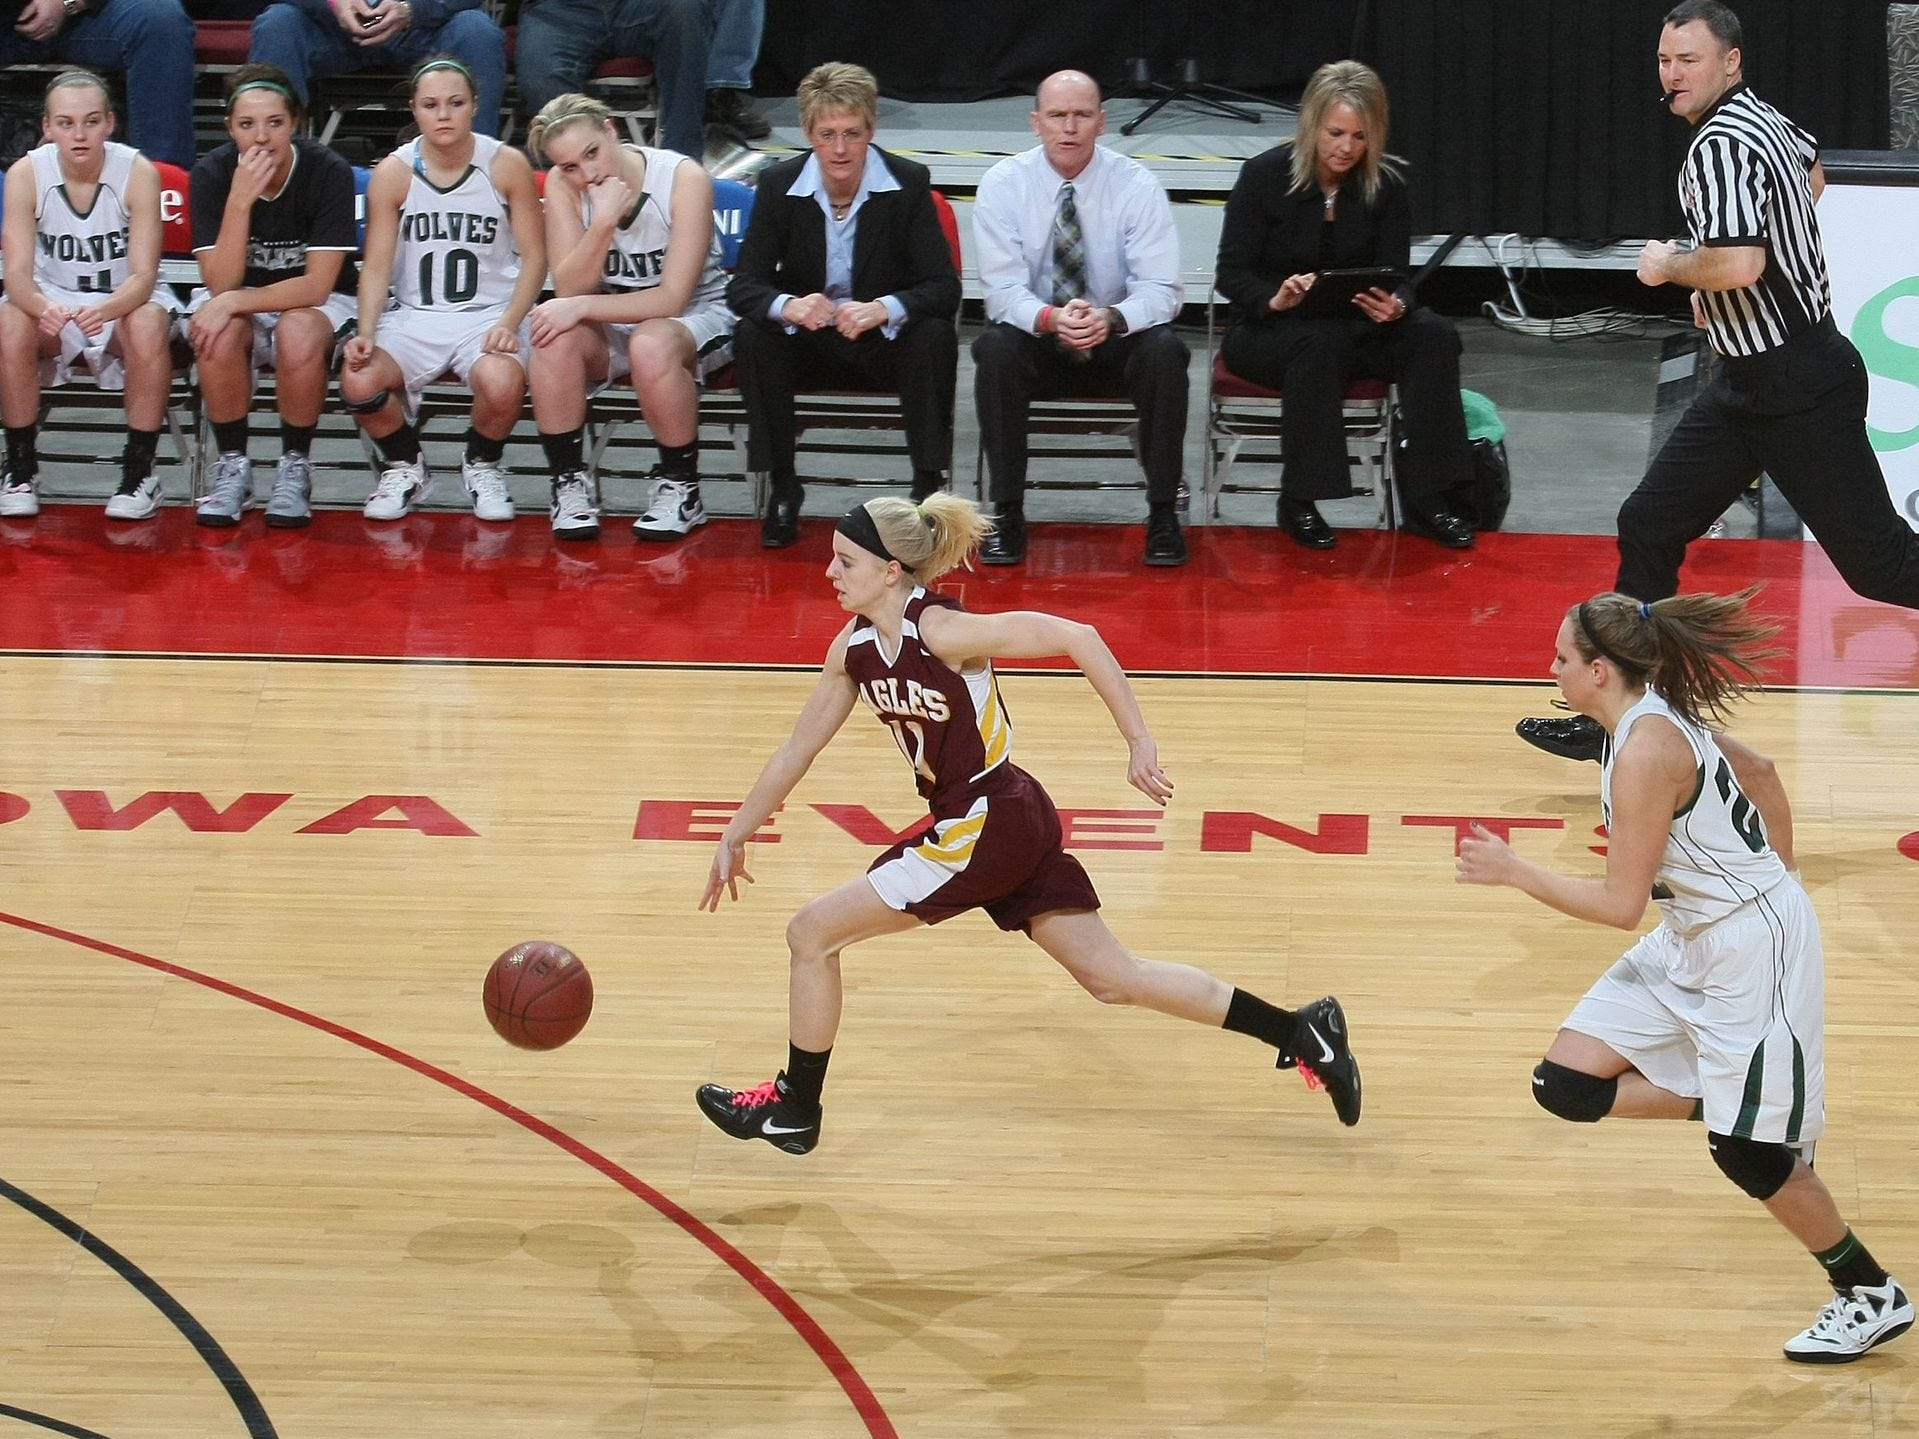 2012: Pella Christian's Jasmin Schelhaas makes a fast break to the basket, trailed by IKM-Manning's Tember Schechinger in their 2A semifinal at the state girls' basketball tournament. Register file photo